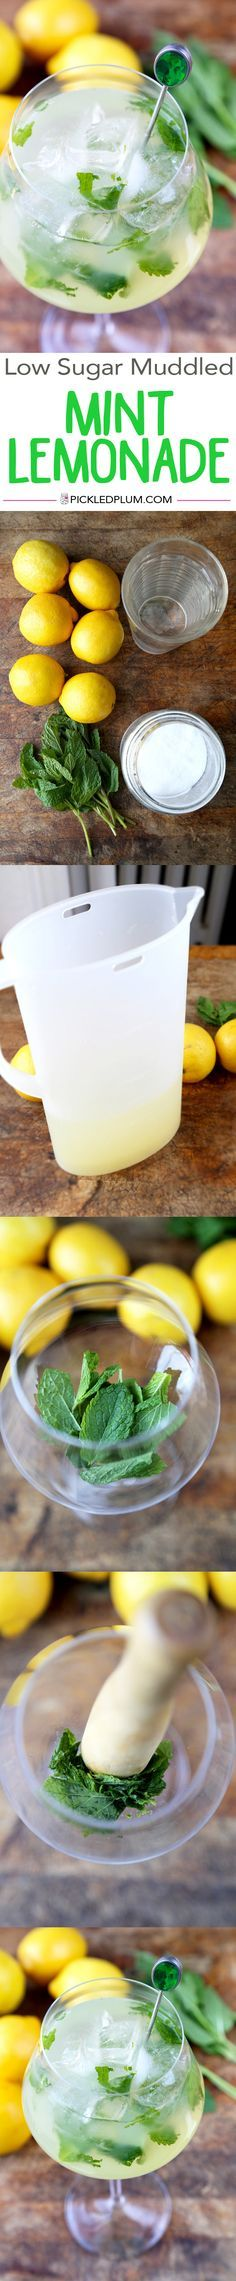 Low Sugar Mint Lemonade - Healthy, Tart and so Refreshing! http://www.pickledplum.com/mint-lemonade-recipe-low-sugar/